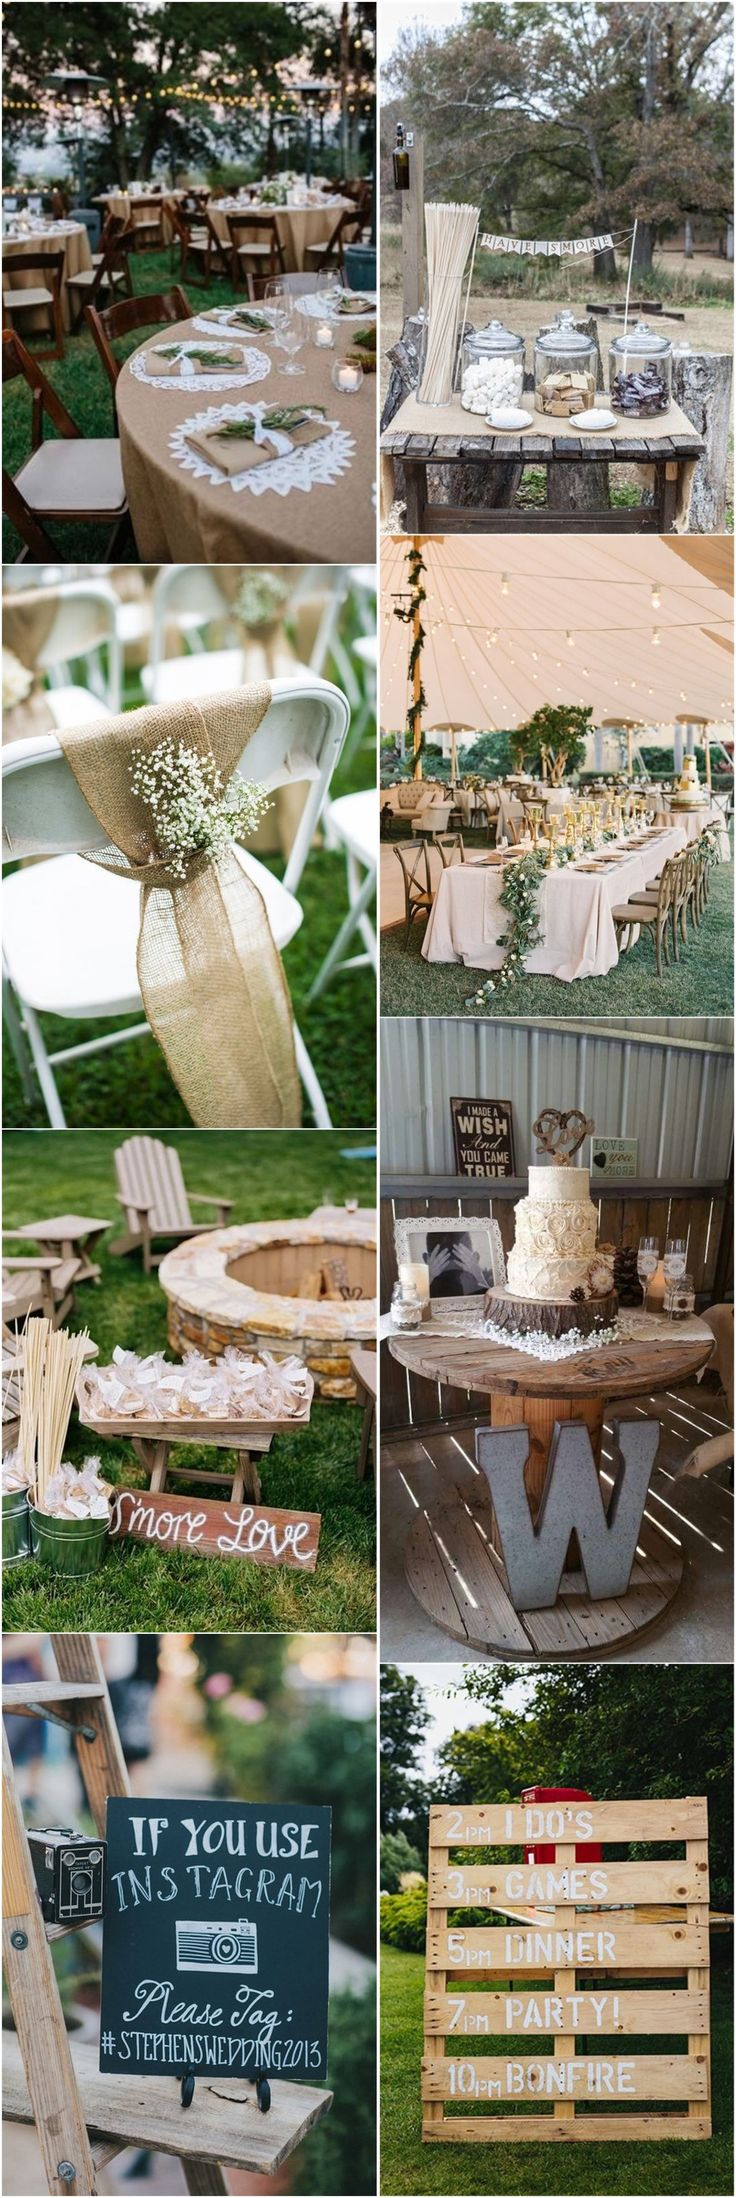 802 Best Rustic Weddings Images On Pinterest